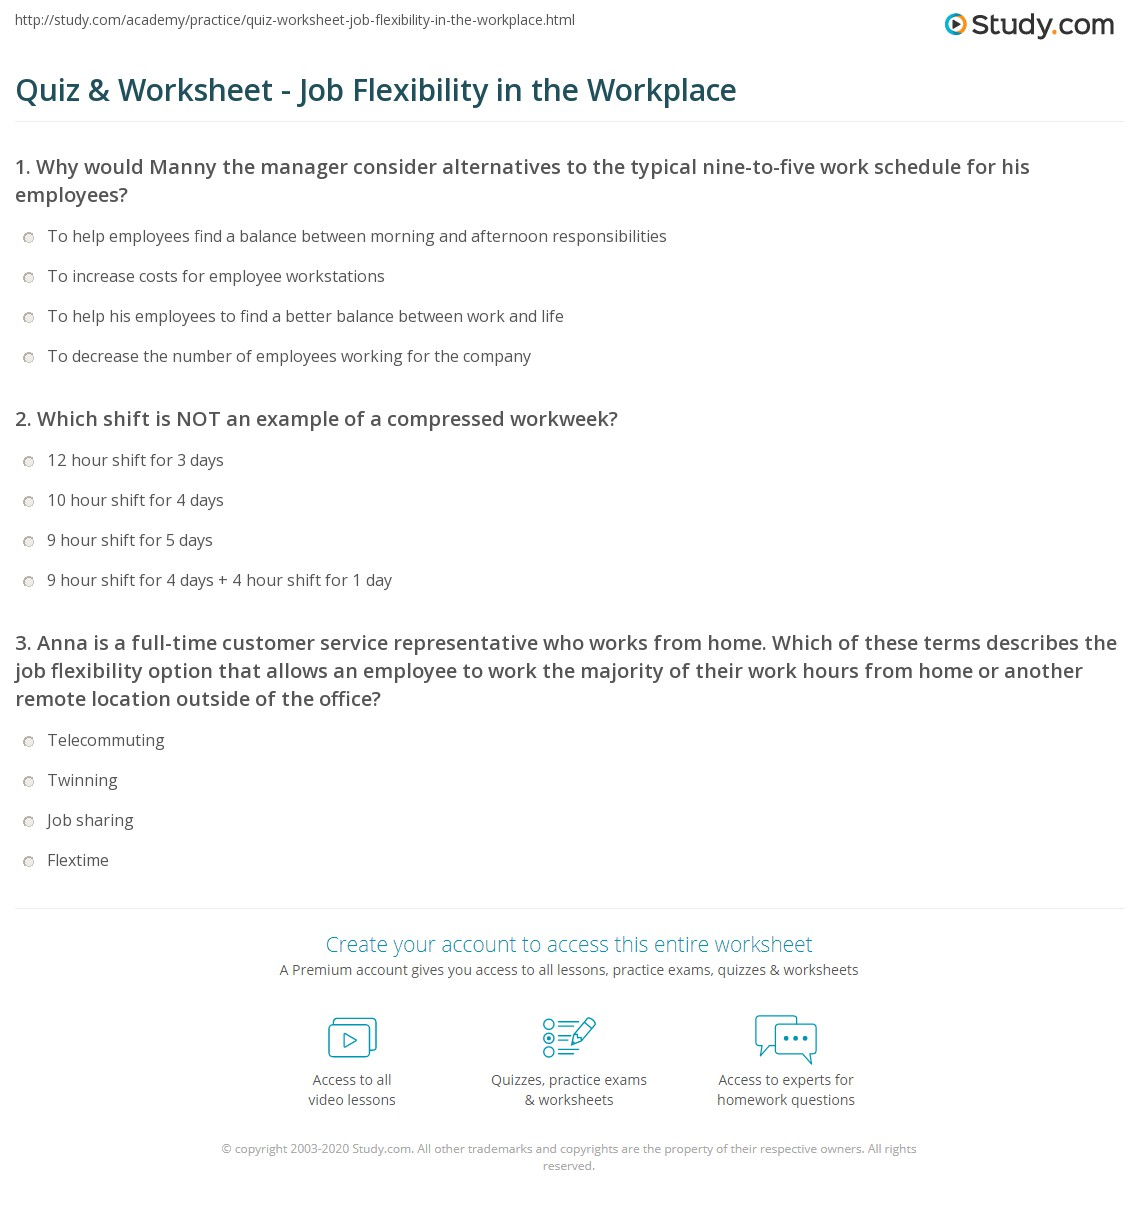 quiz worksheet job flexibility in the workplace com print job flexibility in the workplace worksheet